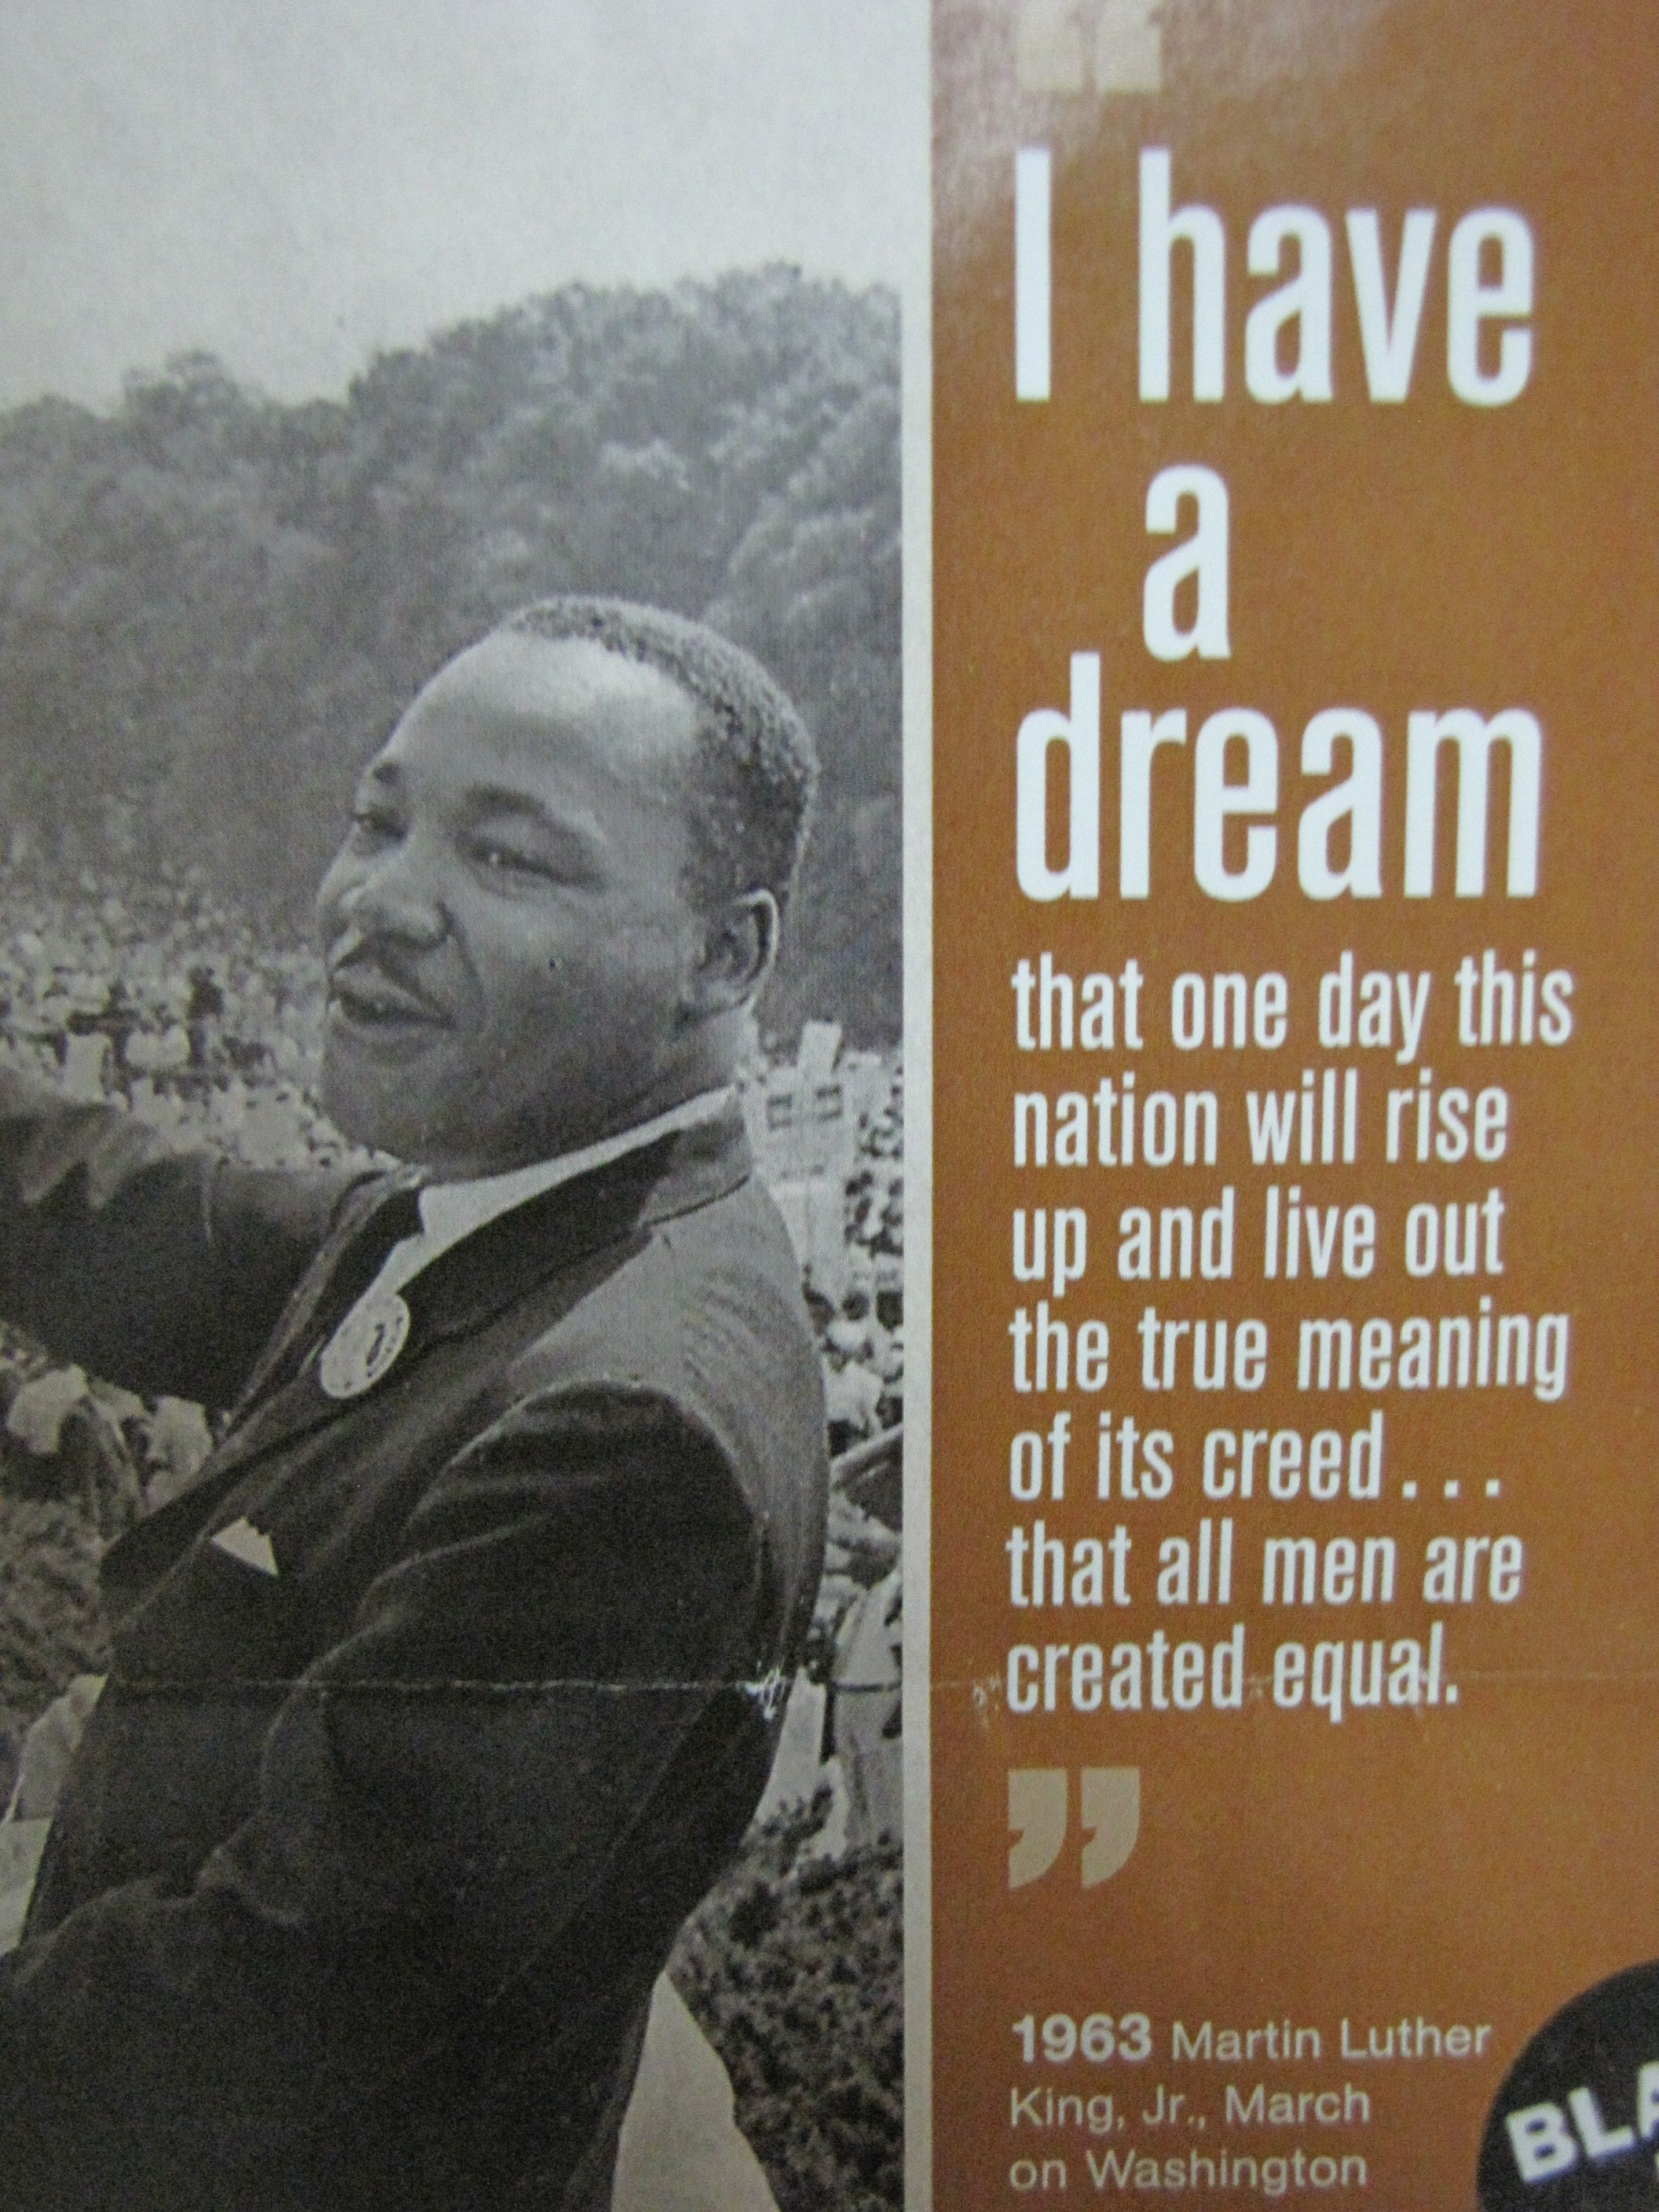 the american dream martin luther king jr essay Sometimes it just needs a very special moment to make someone immortal in the case of martin luther king jr it was his famous speech in washington, in which he described in 1963 his dream for america.